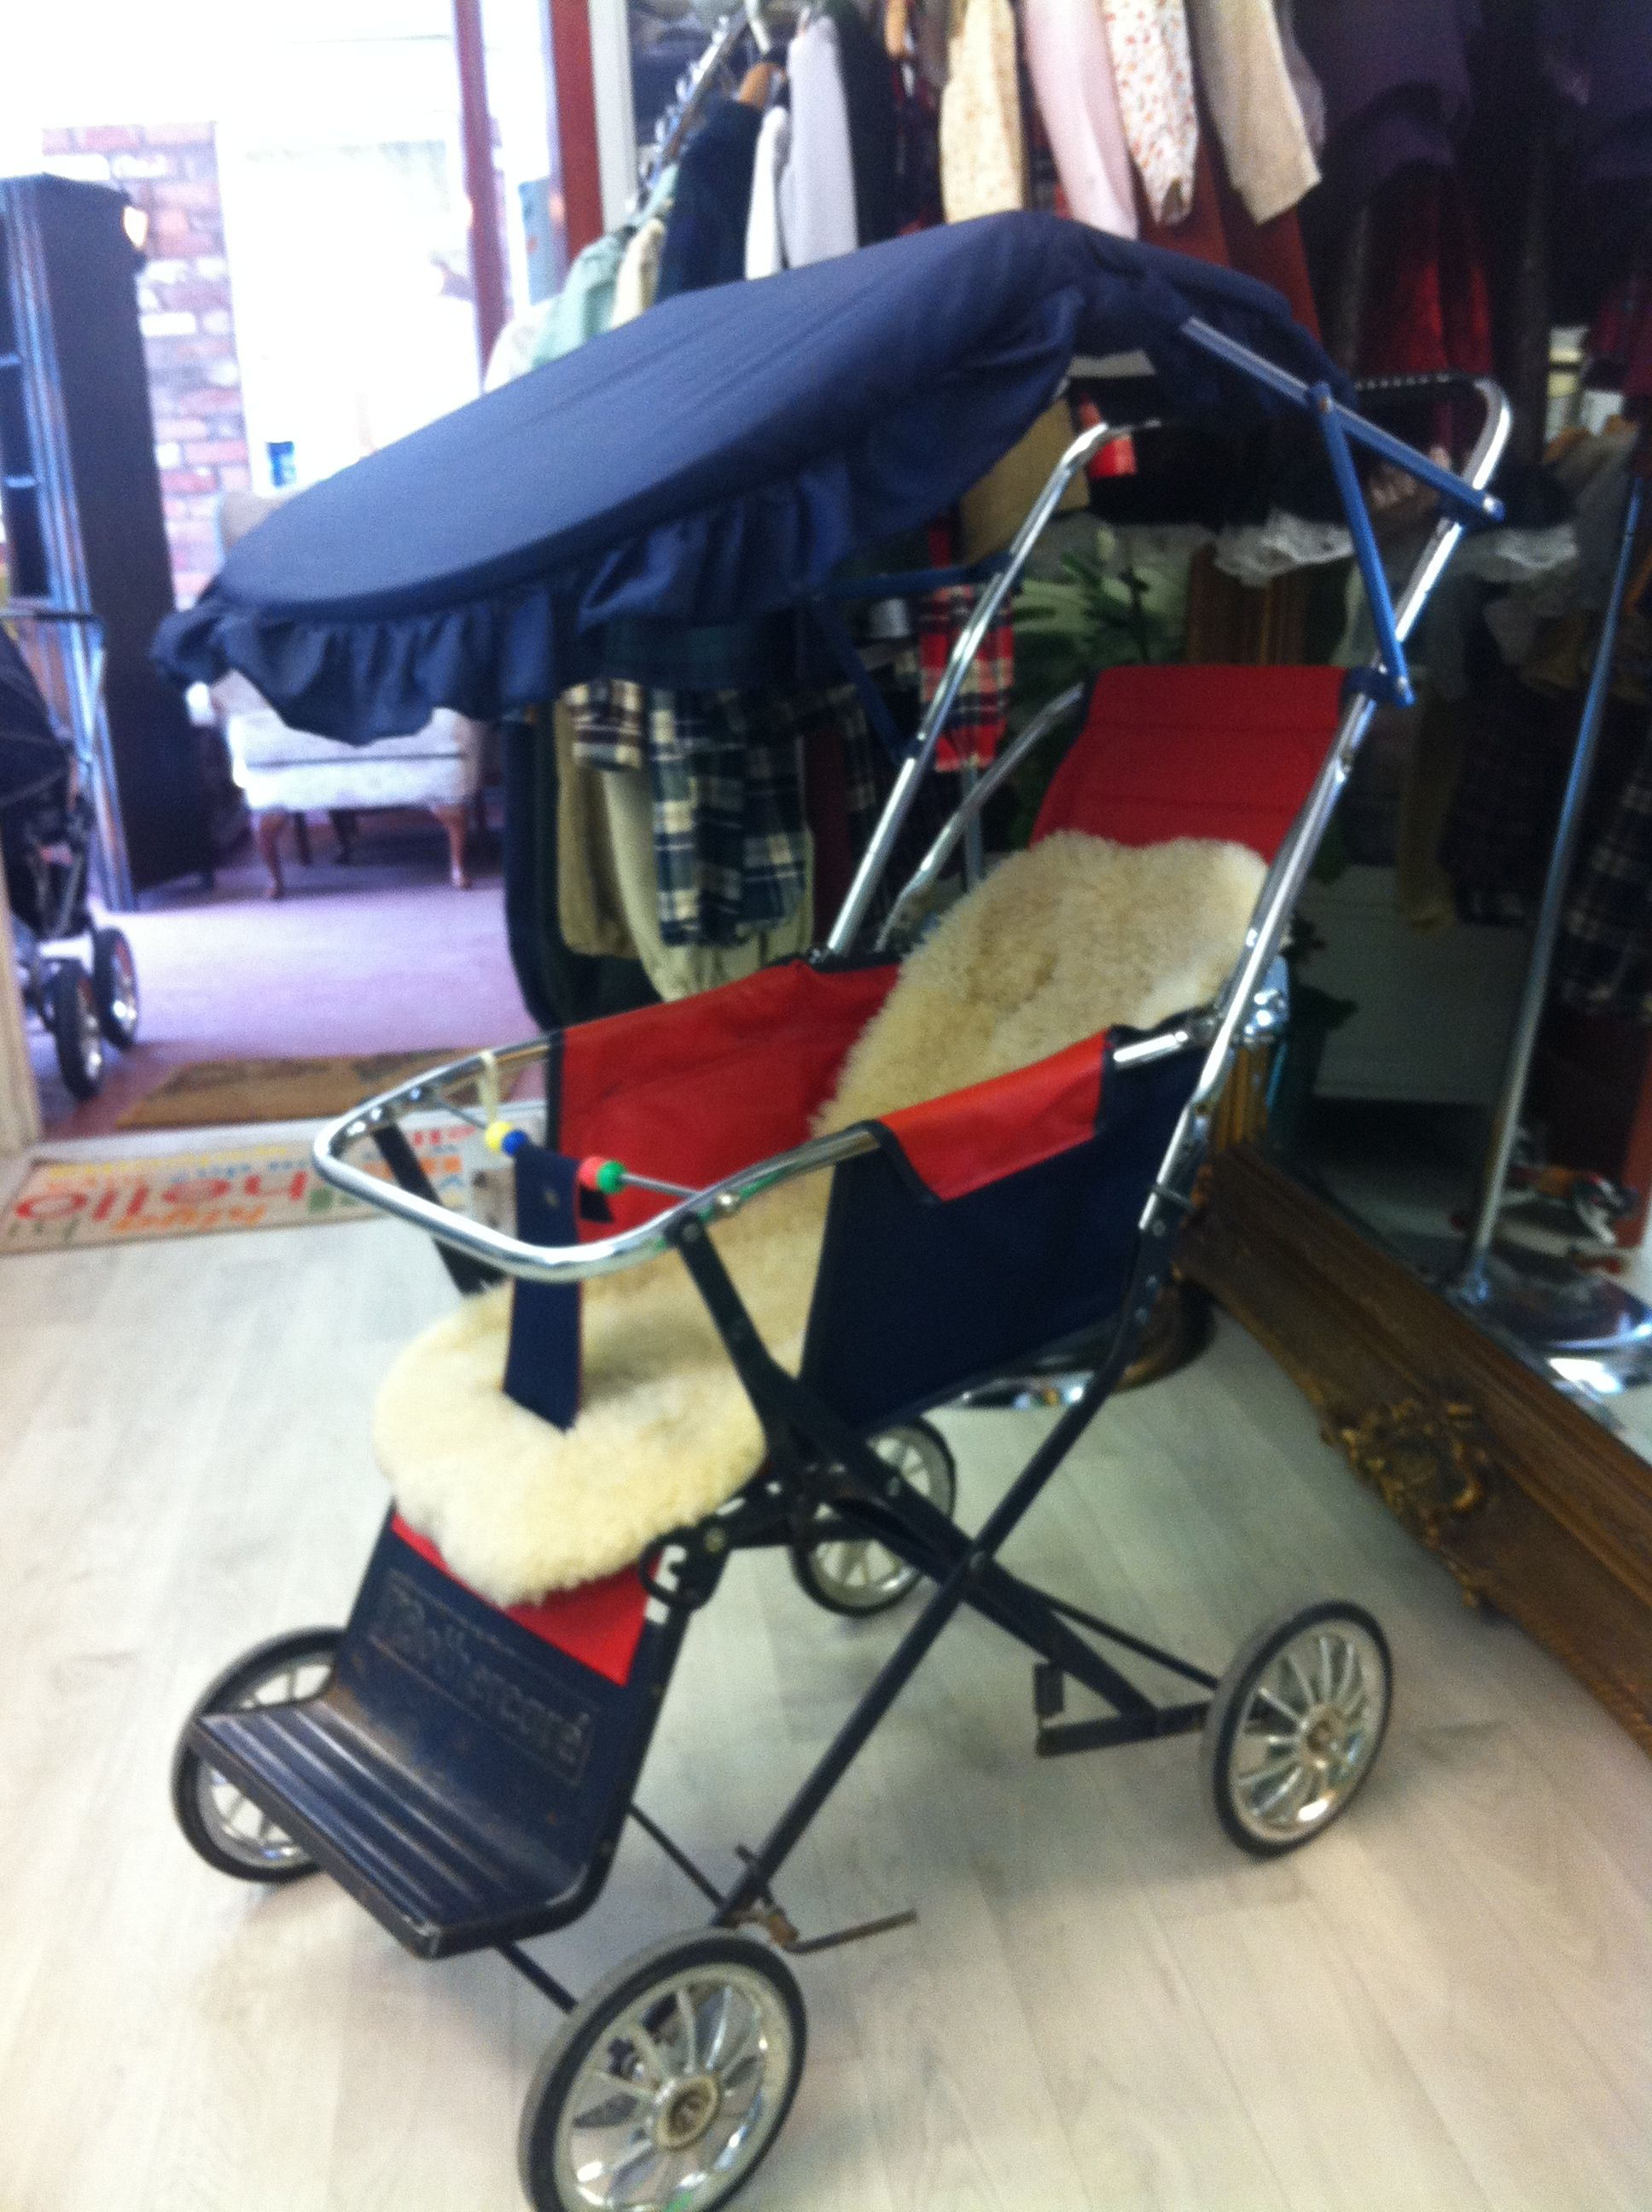 Vintage Mothercare Pushchair in Navy and Red with